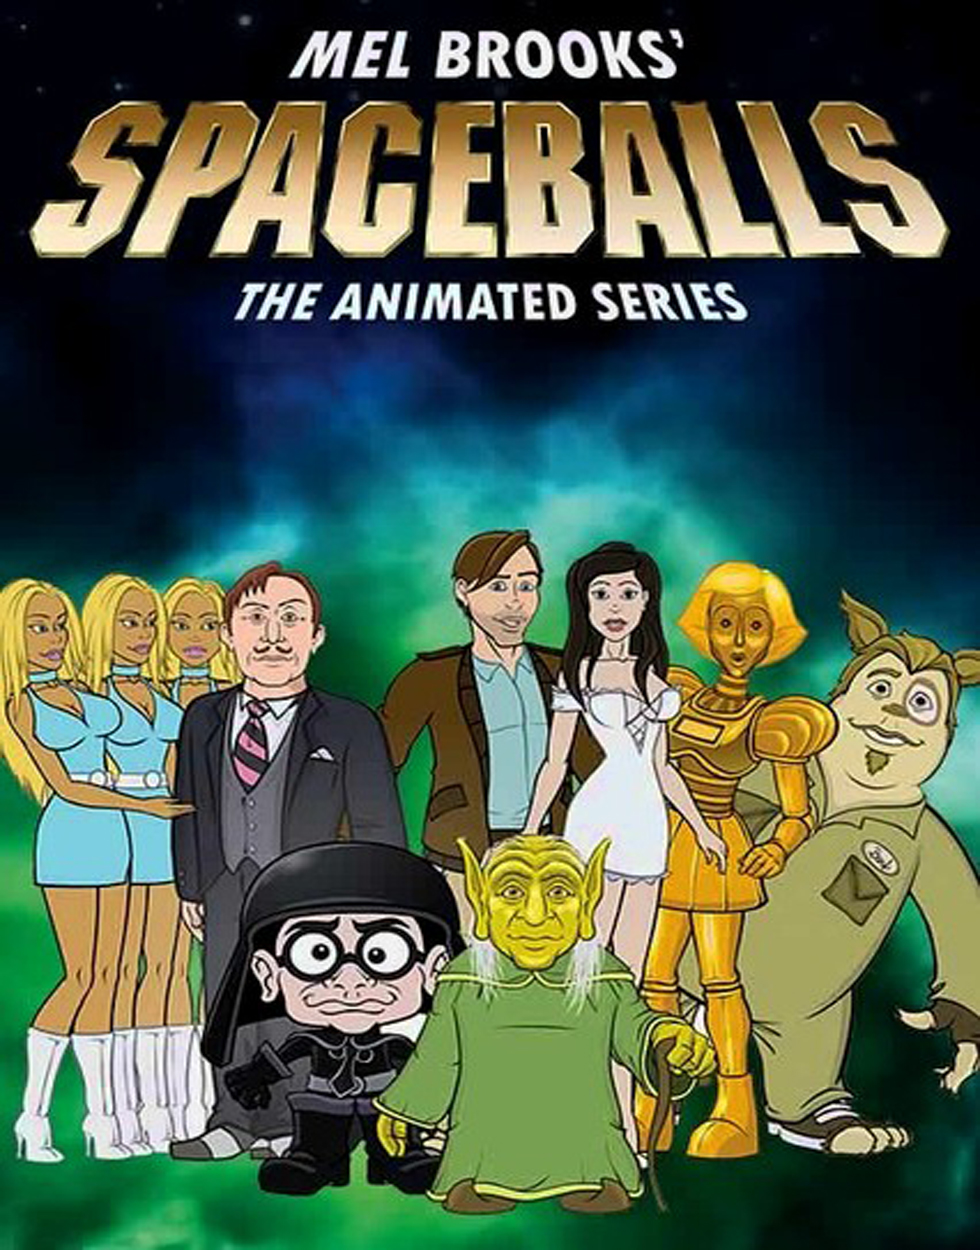 Spaceball Series.jpg